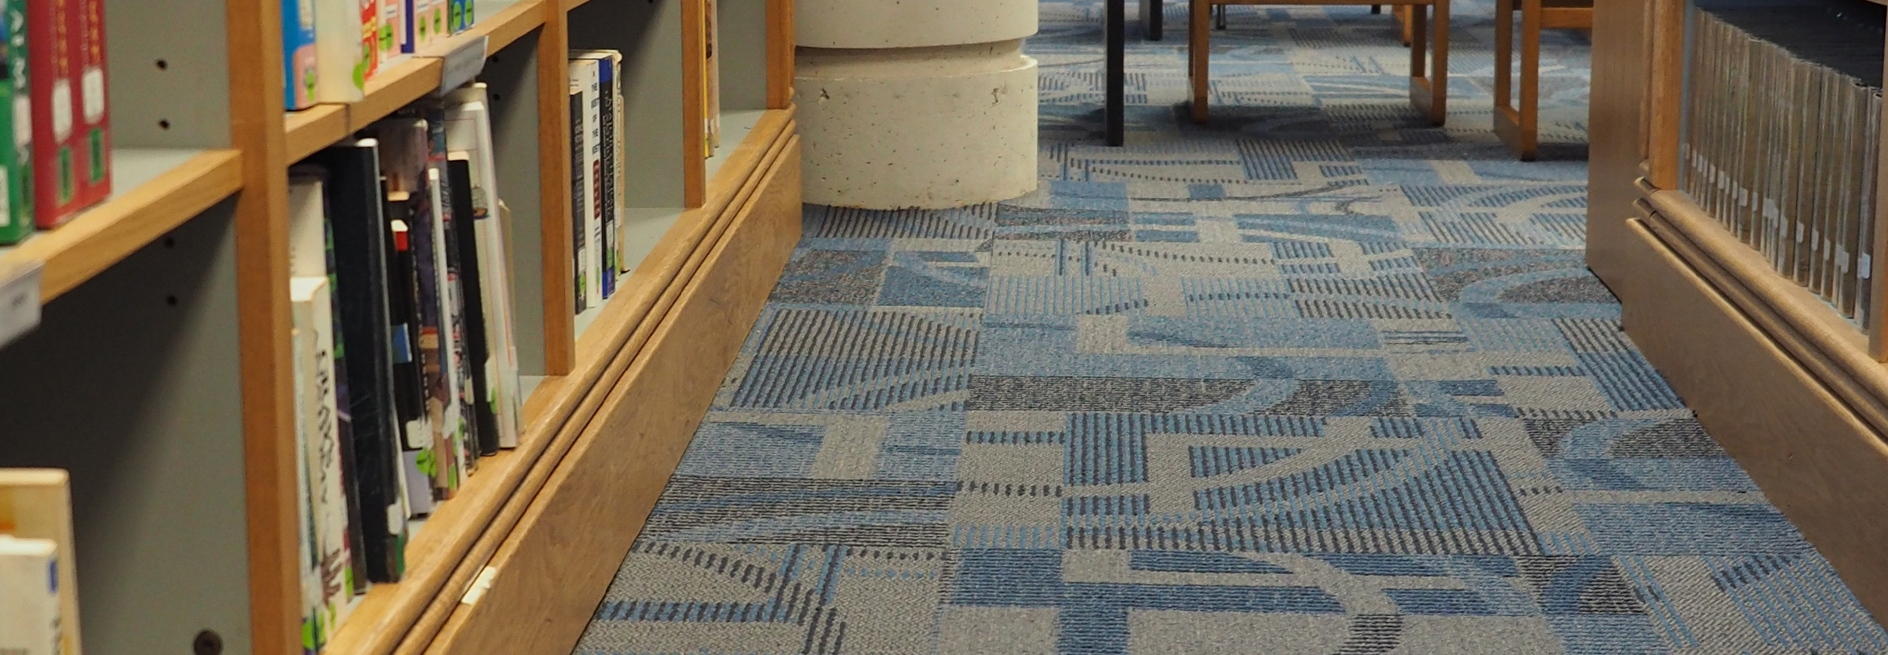 Example Of Mannington Carpet Tile In School